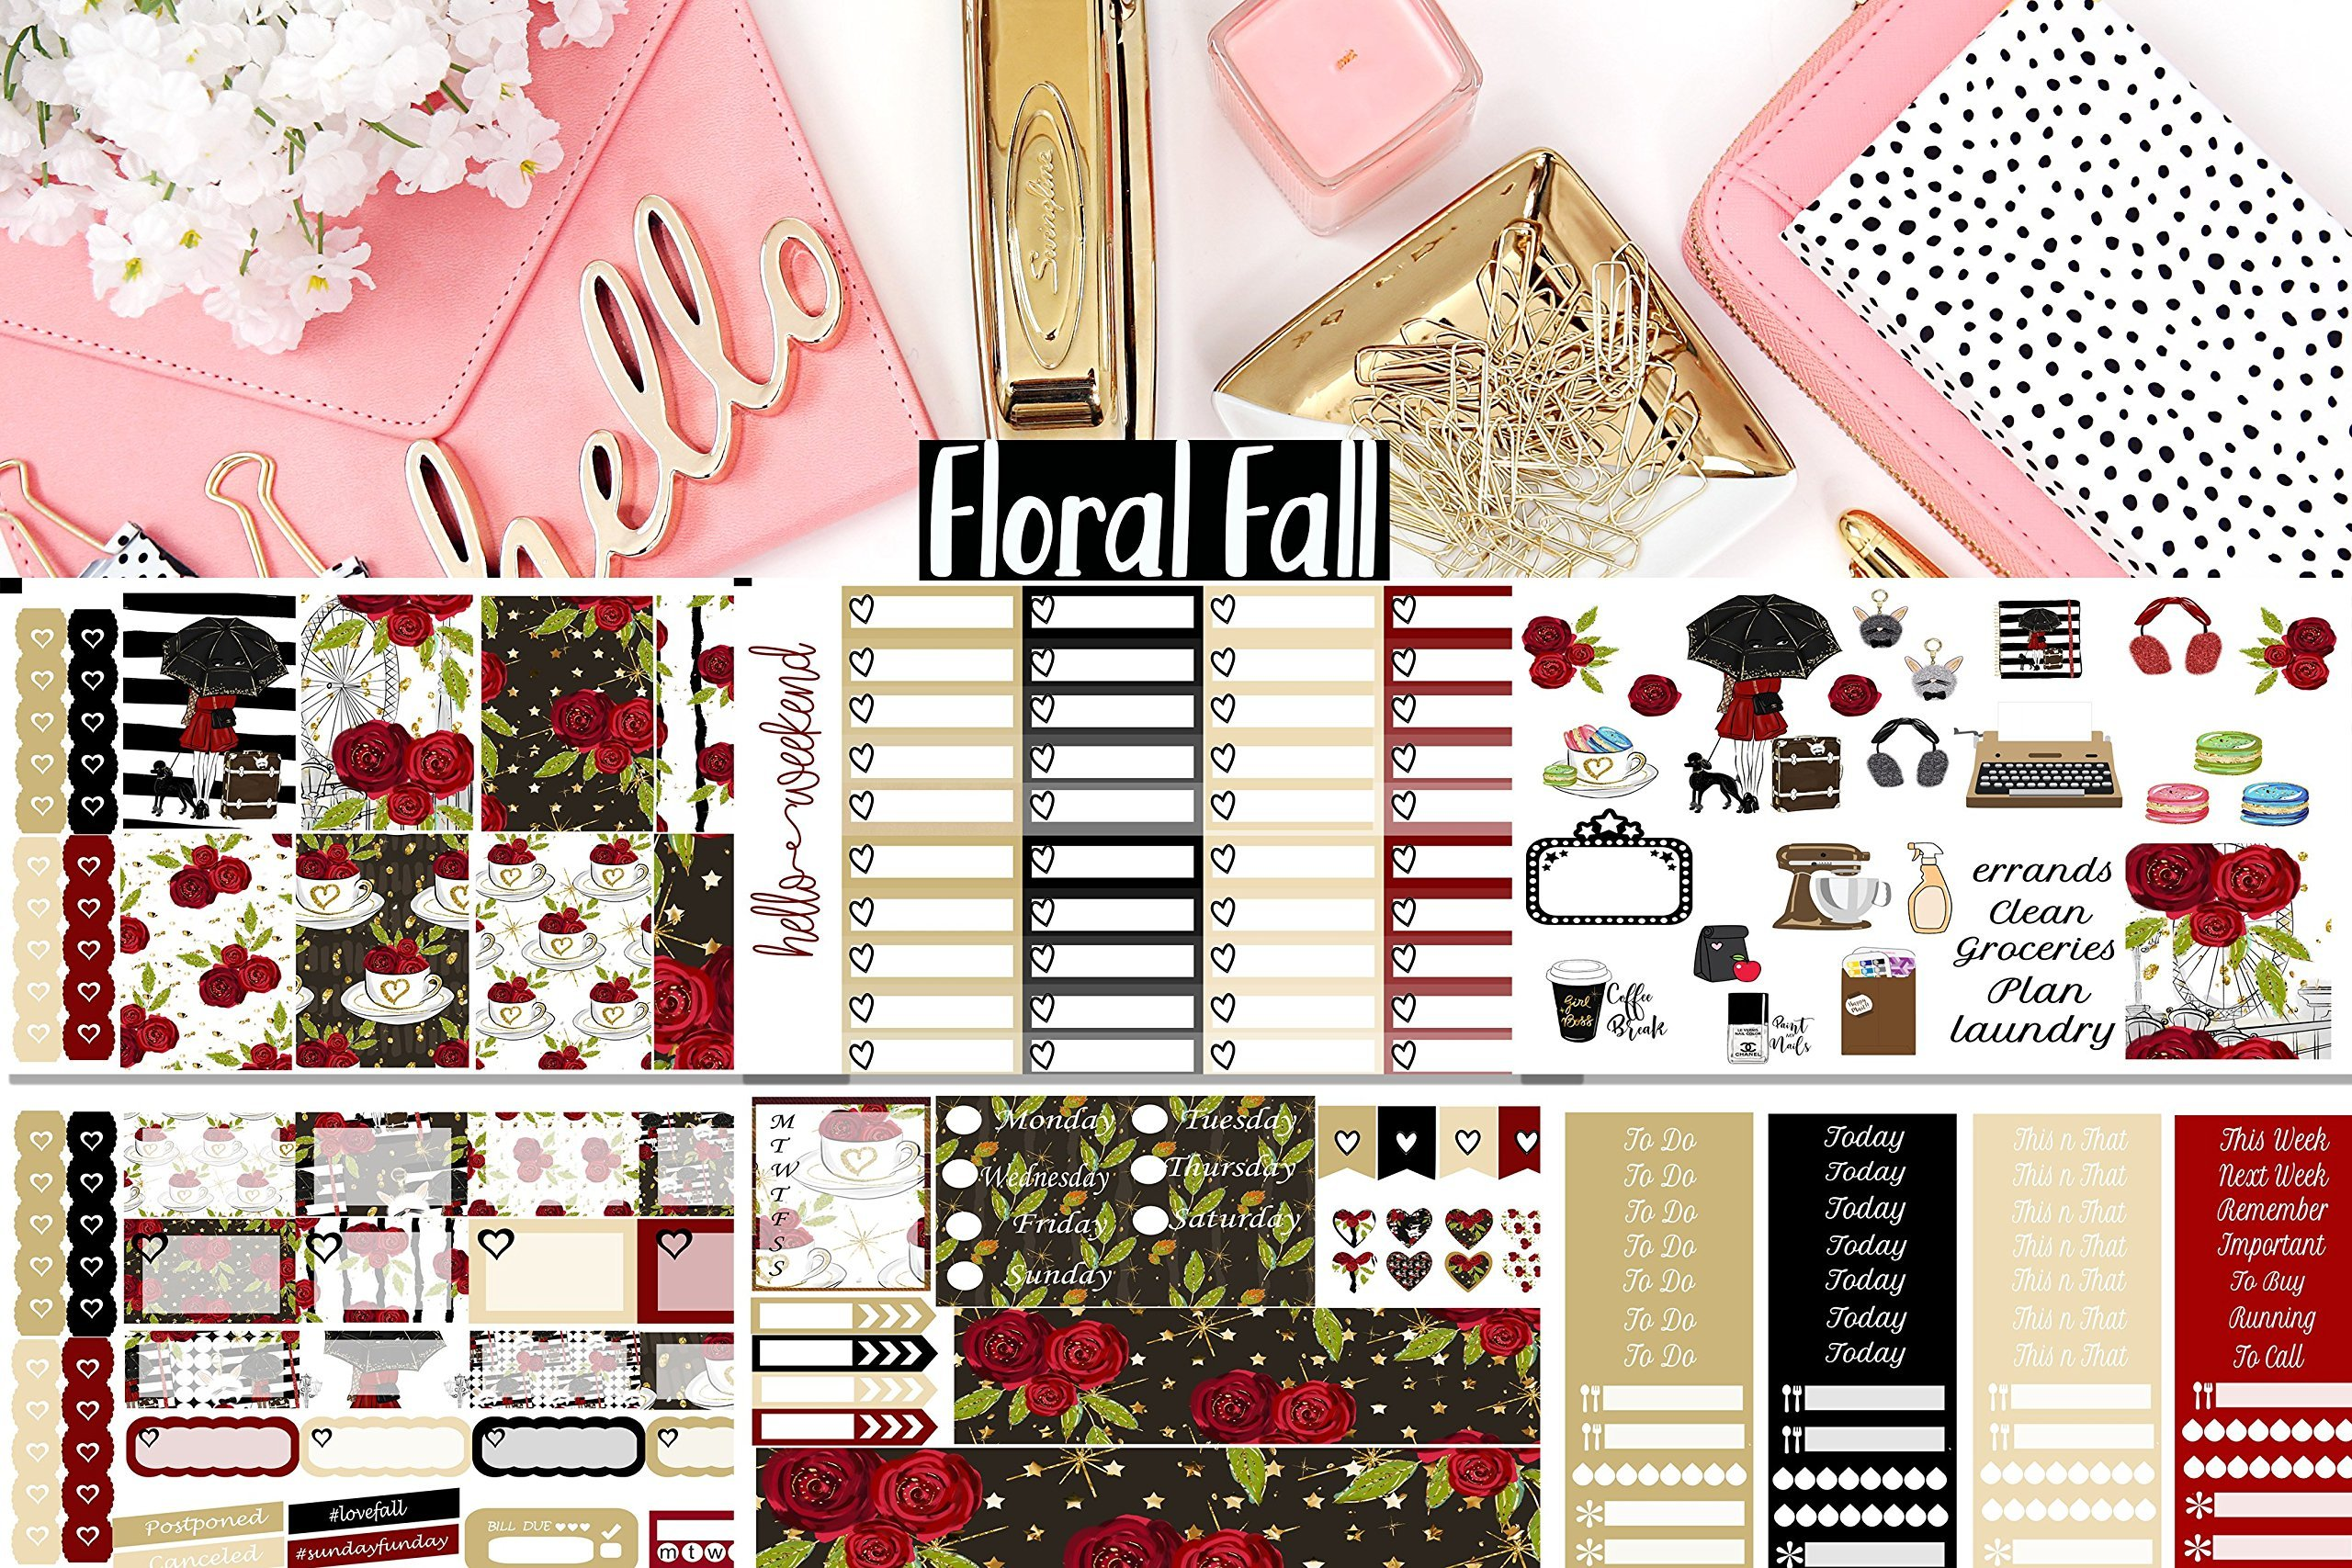 Floral Fall Planner Weekly Sticker Kit. 6 sheets, choose your planner size. On matte sticker paper.